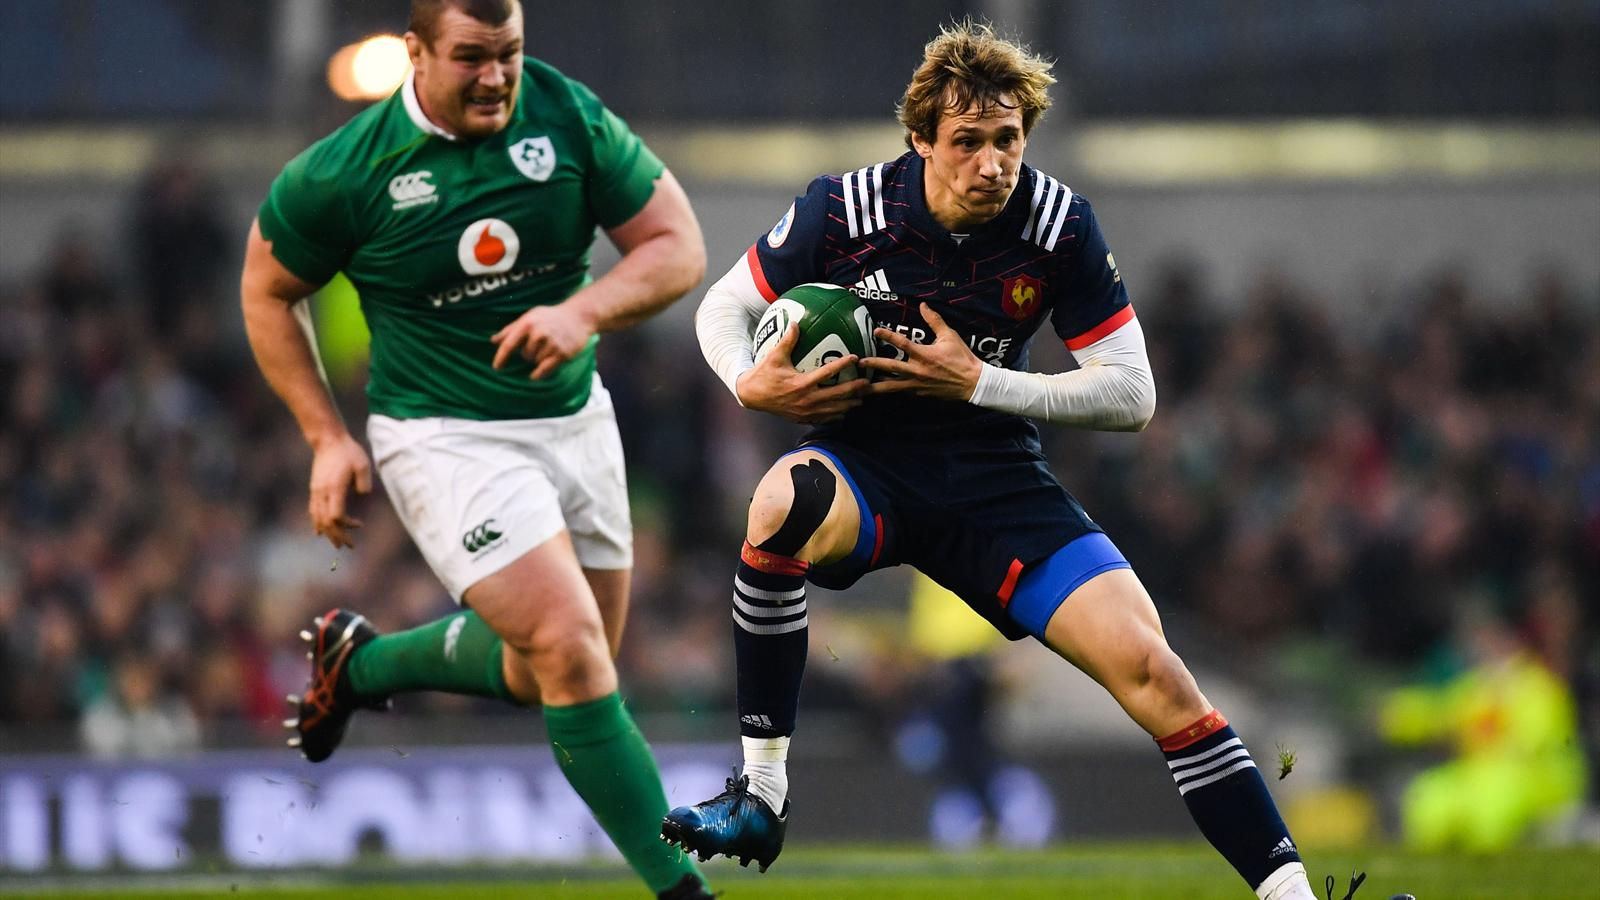 Video tournoi des 6 nations le r sum d 39 irlande france 6 nations 2017 rugby rugbyrama - Rugby coupe des 6 nations ...